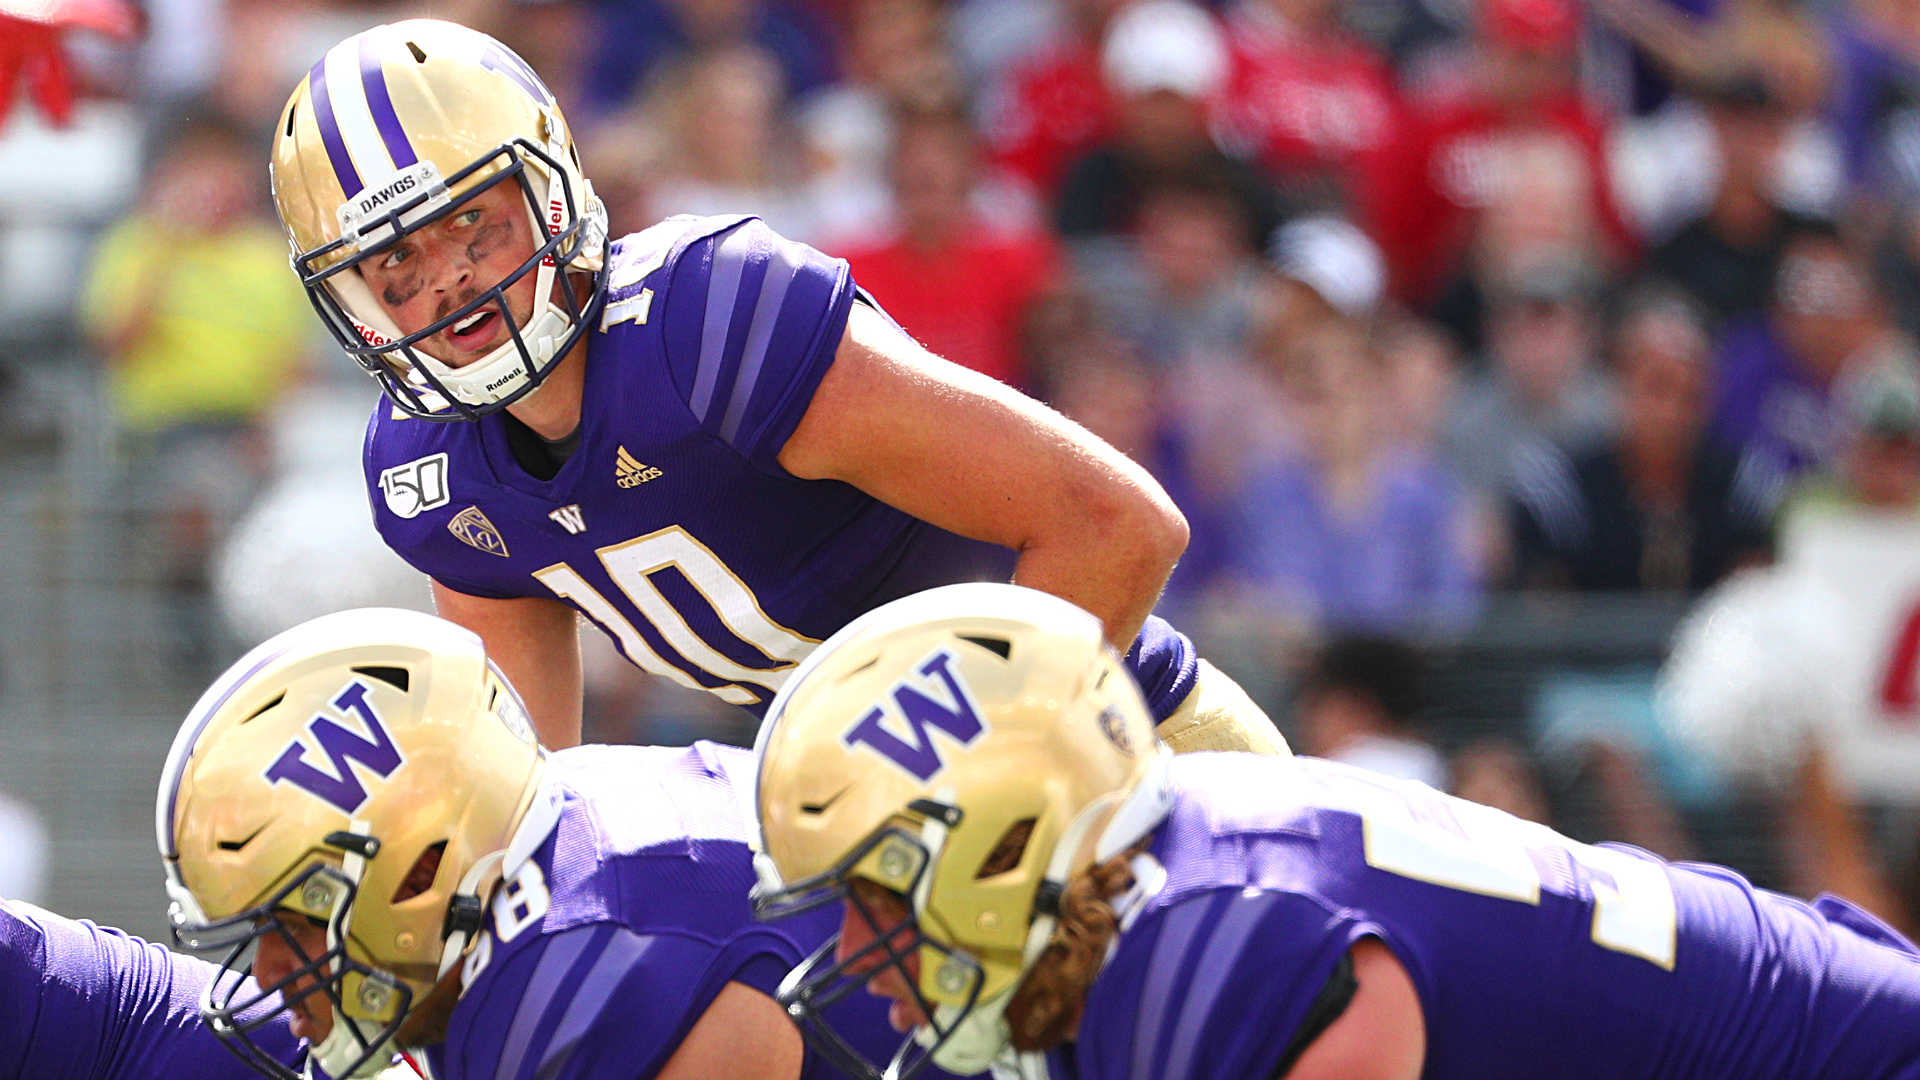 Who is Jacob Eason? Highlights, NFL Draft scouting reports & more about QB from Washington